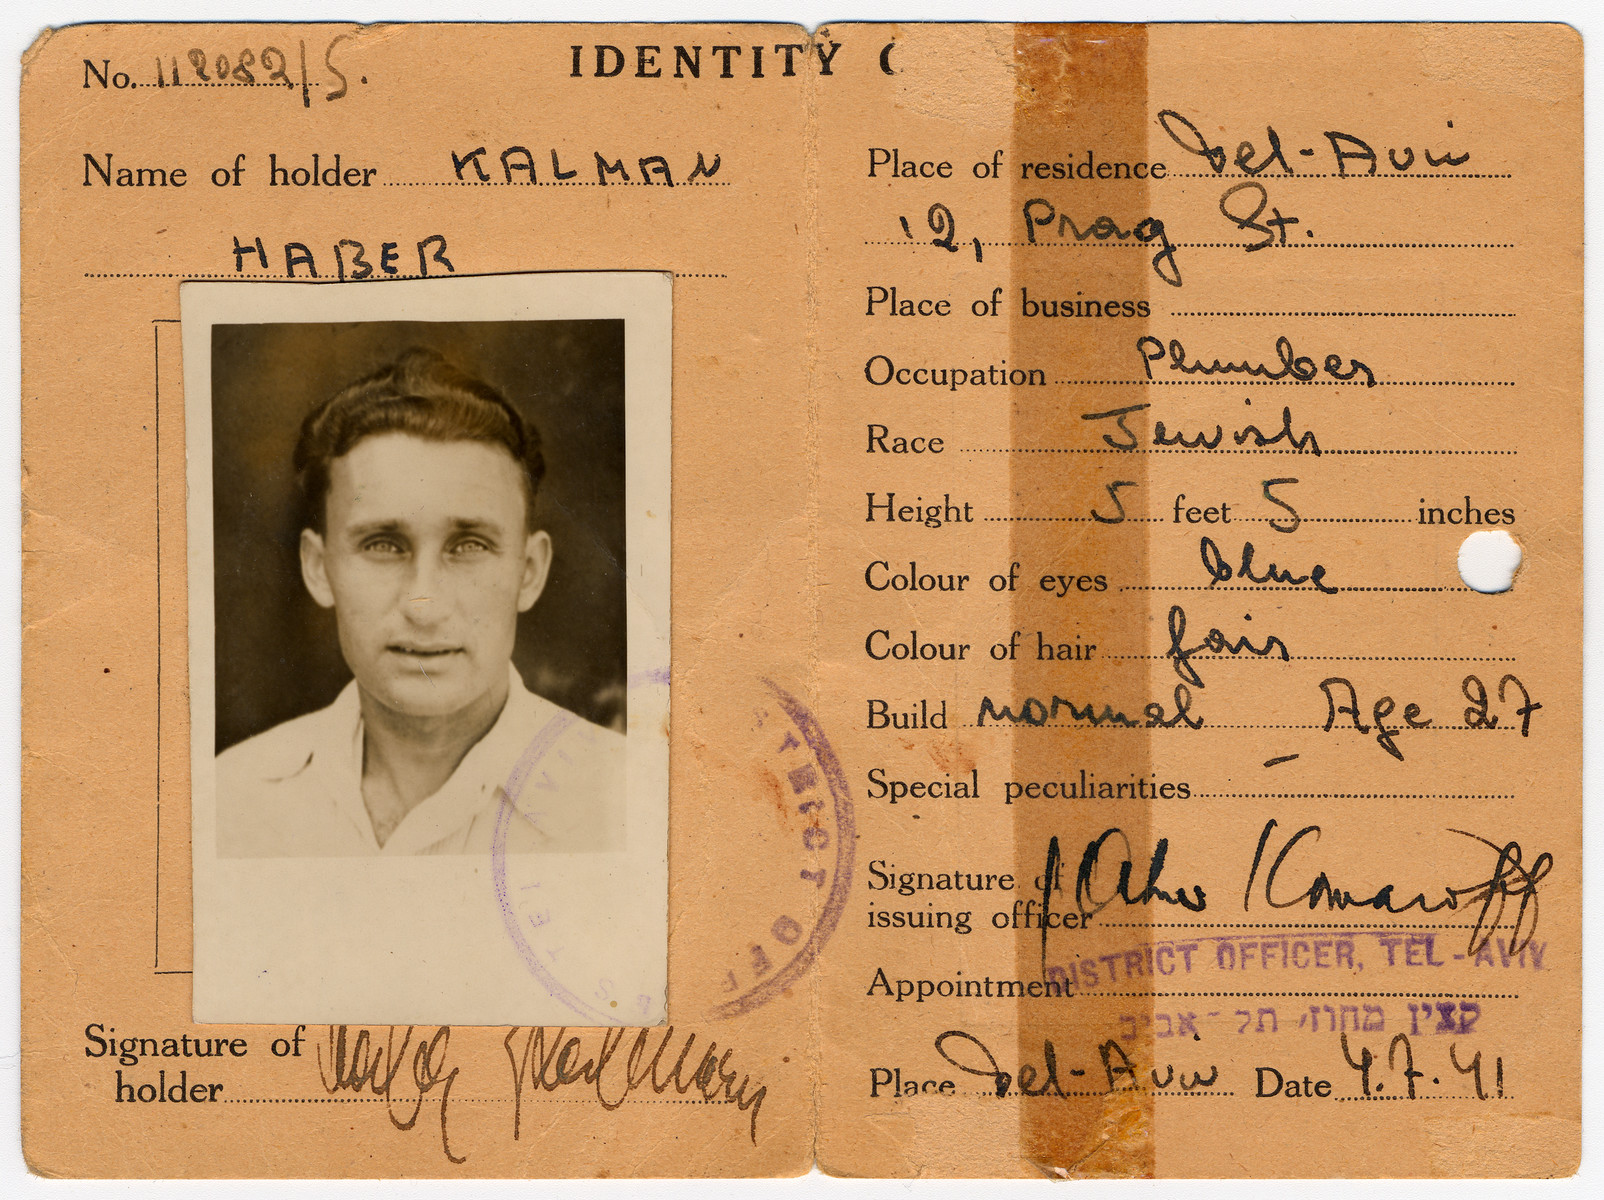 Identification card issued to Kalman Haber, an Austrian Jew, by British authorities in Palestine.  He lived briefly in forced residence in Tel Aviv after the bombing of Cyprus prior to being deported to Southern Africa.